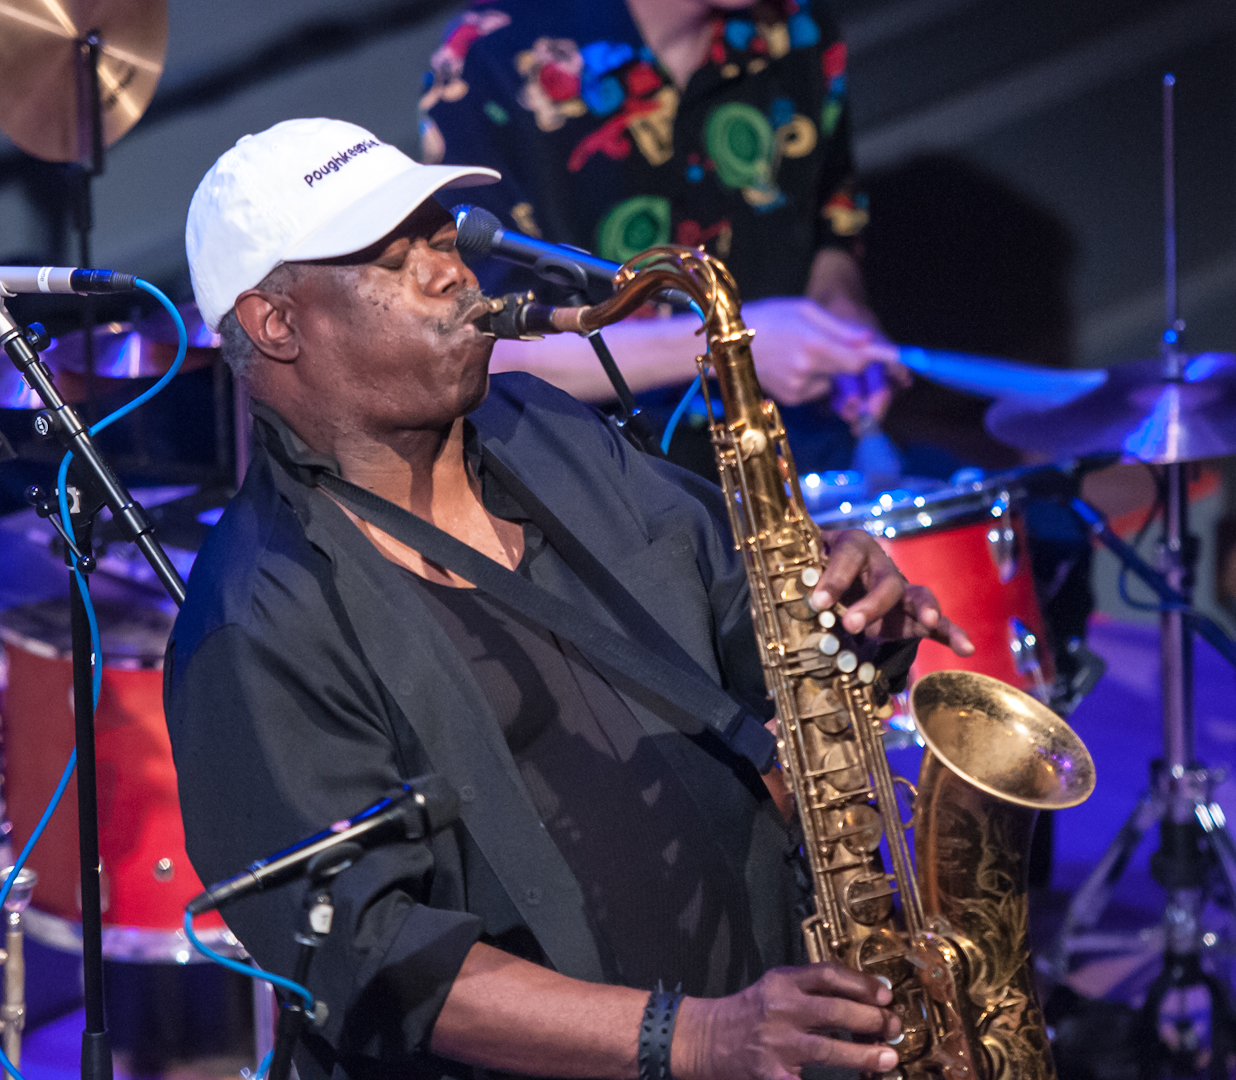 Joe McPhee with Angels, Devils and Haints II at the Vision Festival 2012